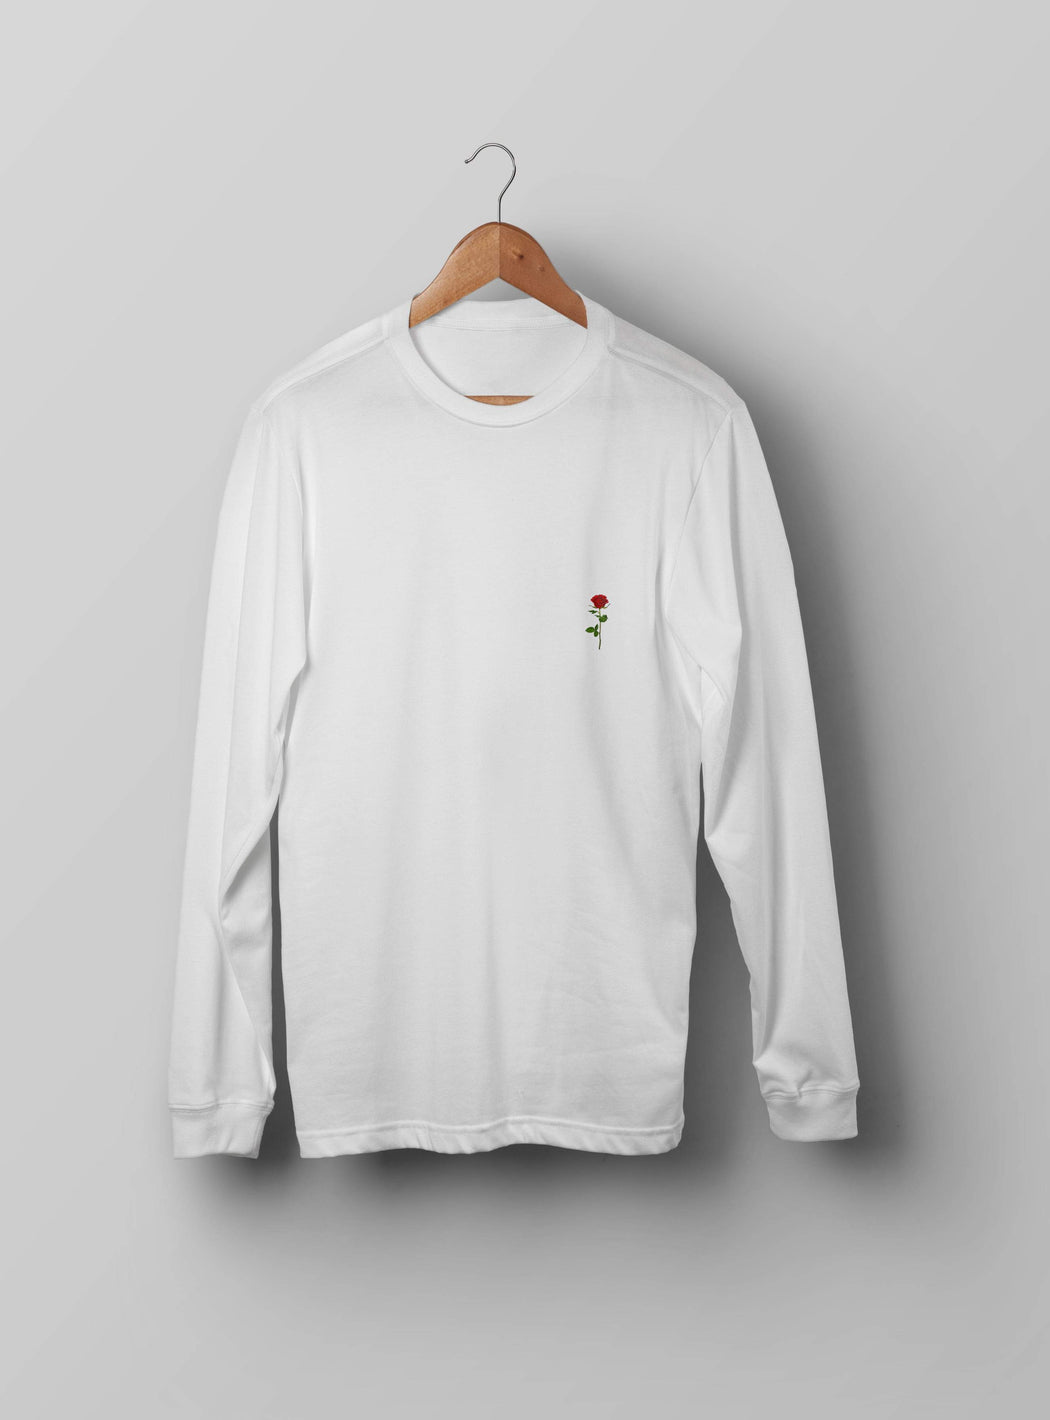 Red Rose White Sweatshirt